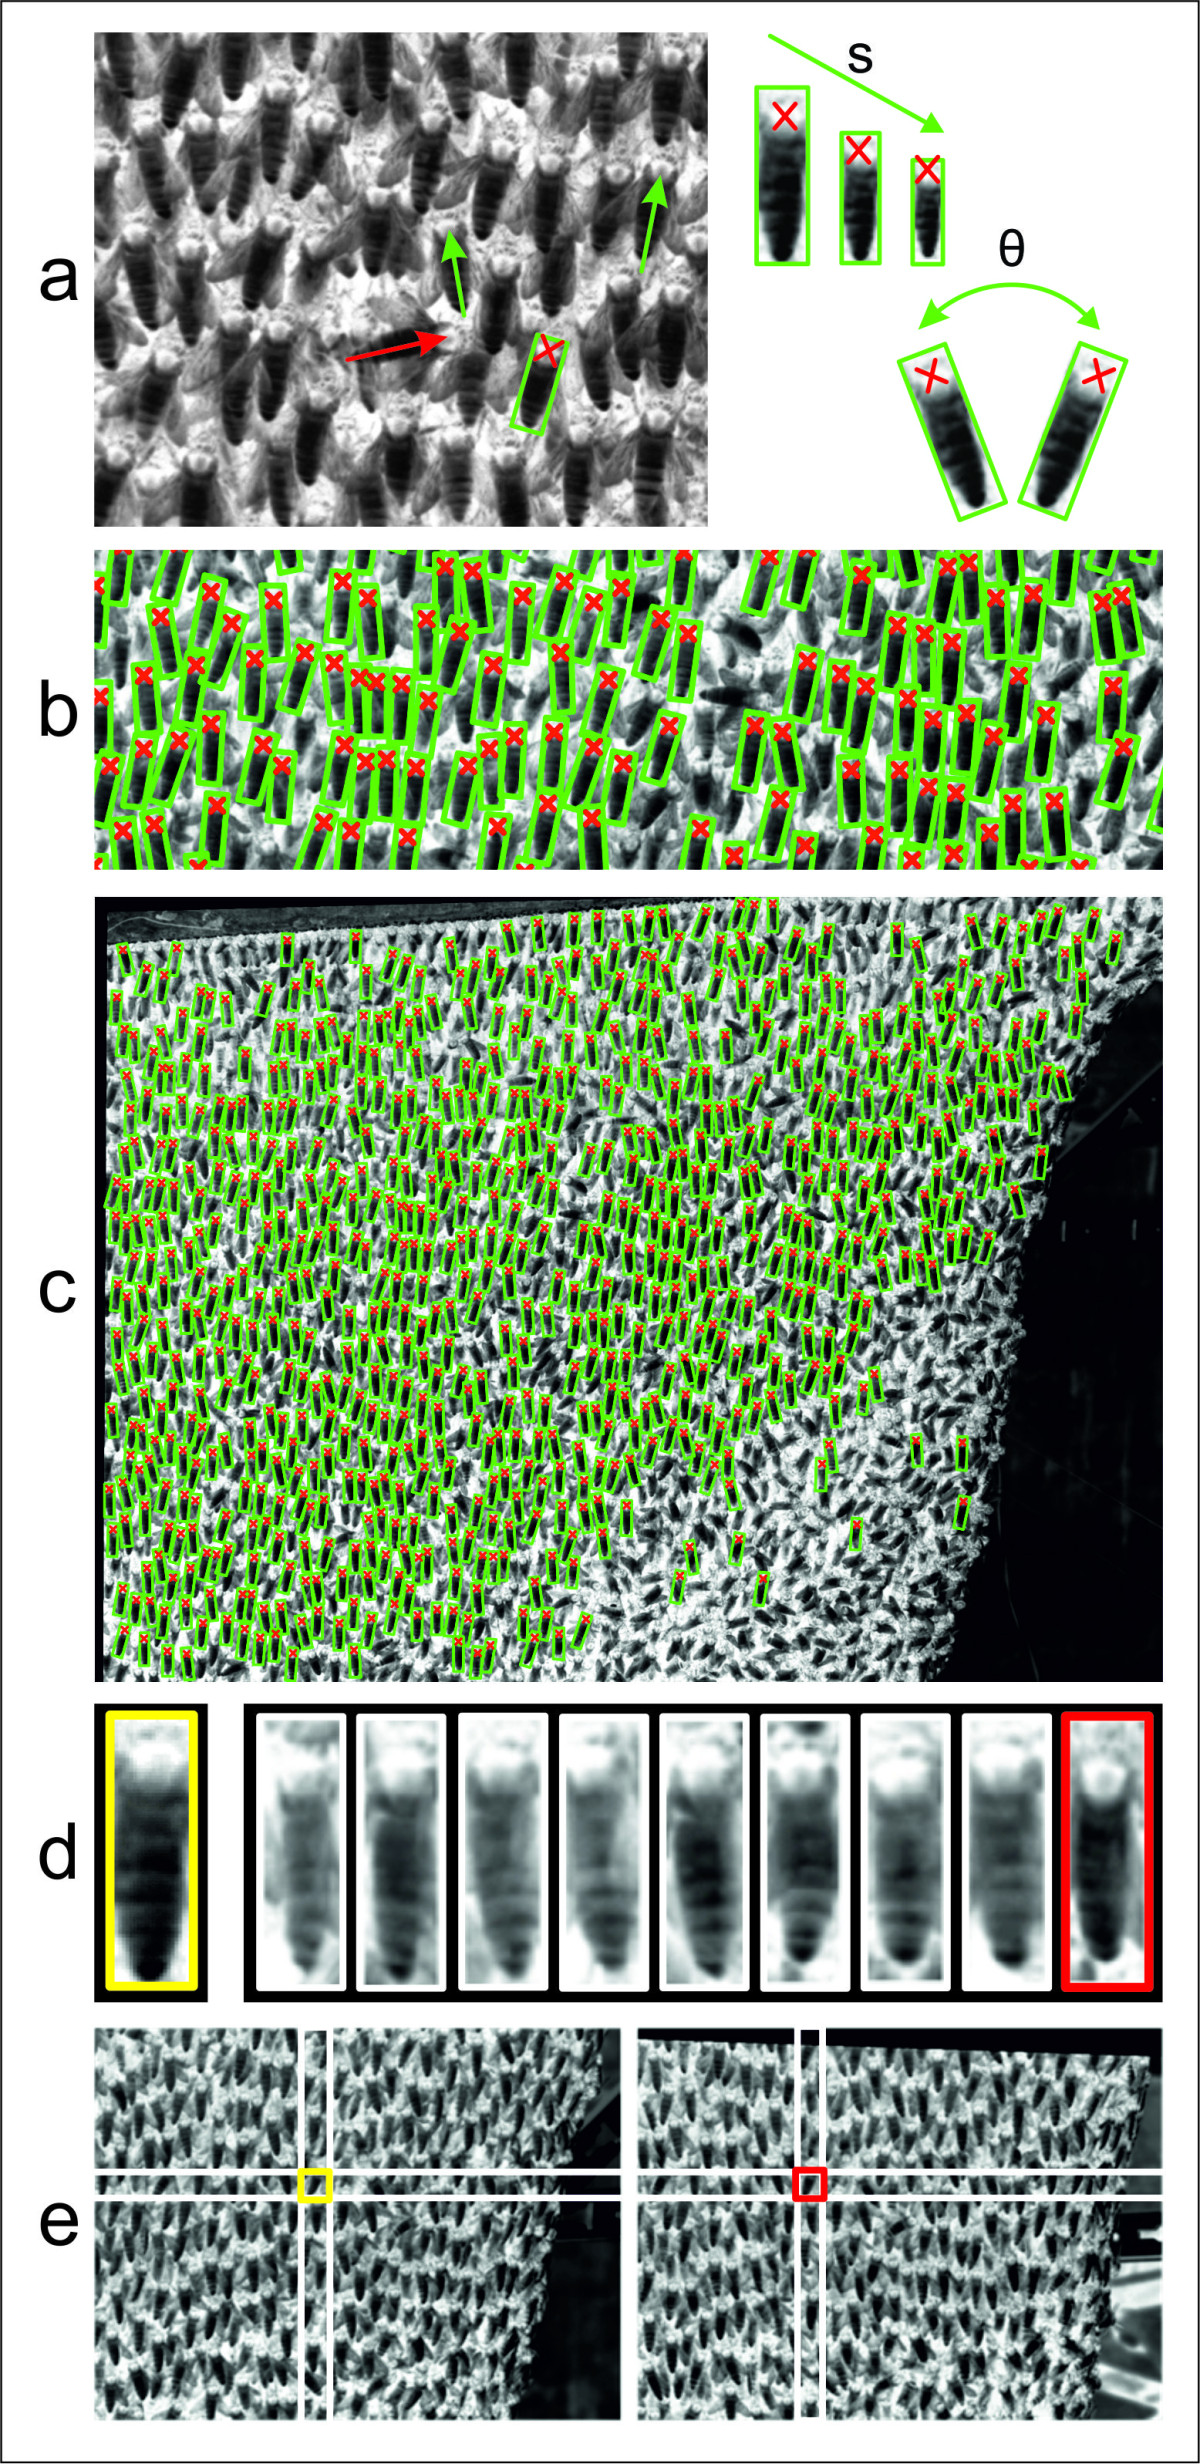 http://static-content.springer.com/image/art%3A10.1186%2F1742-9994-8-3/MediaObjects/12983_2010_Article_150_Fig4_HTML.jpg